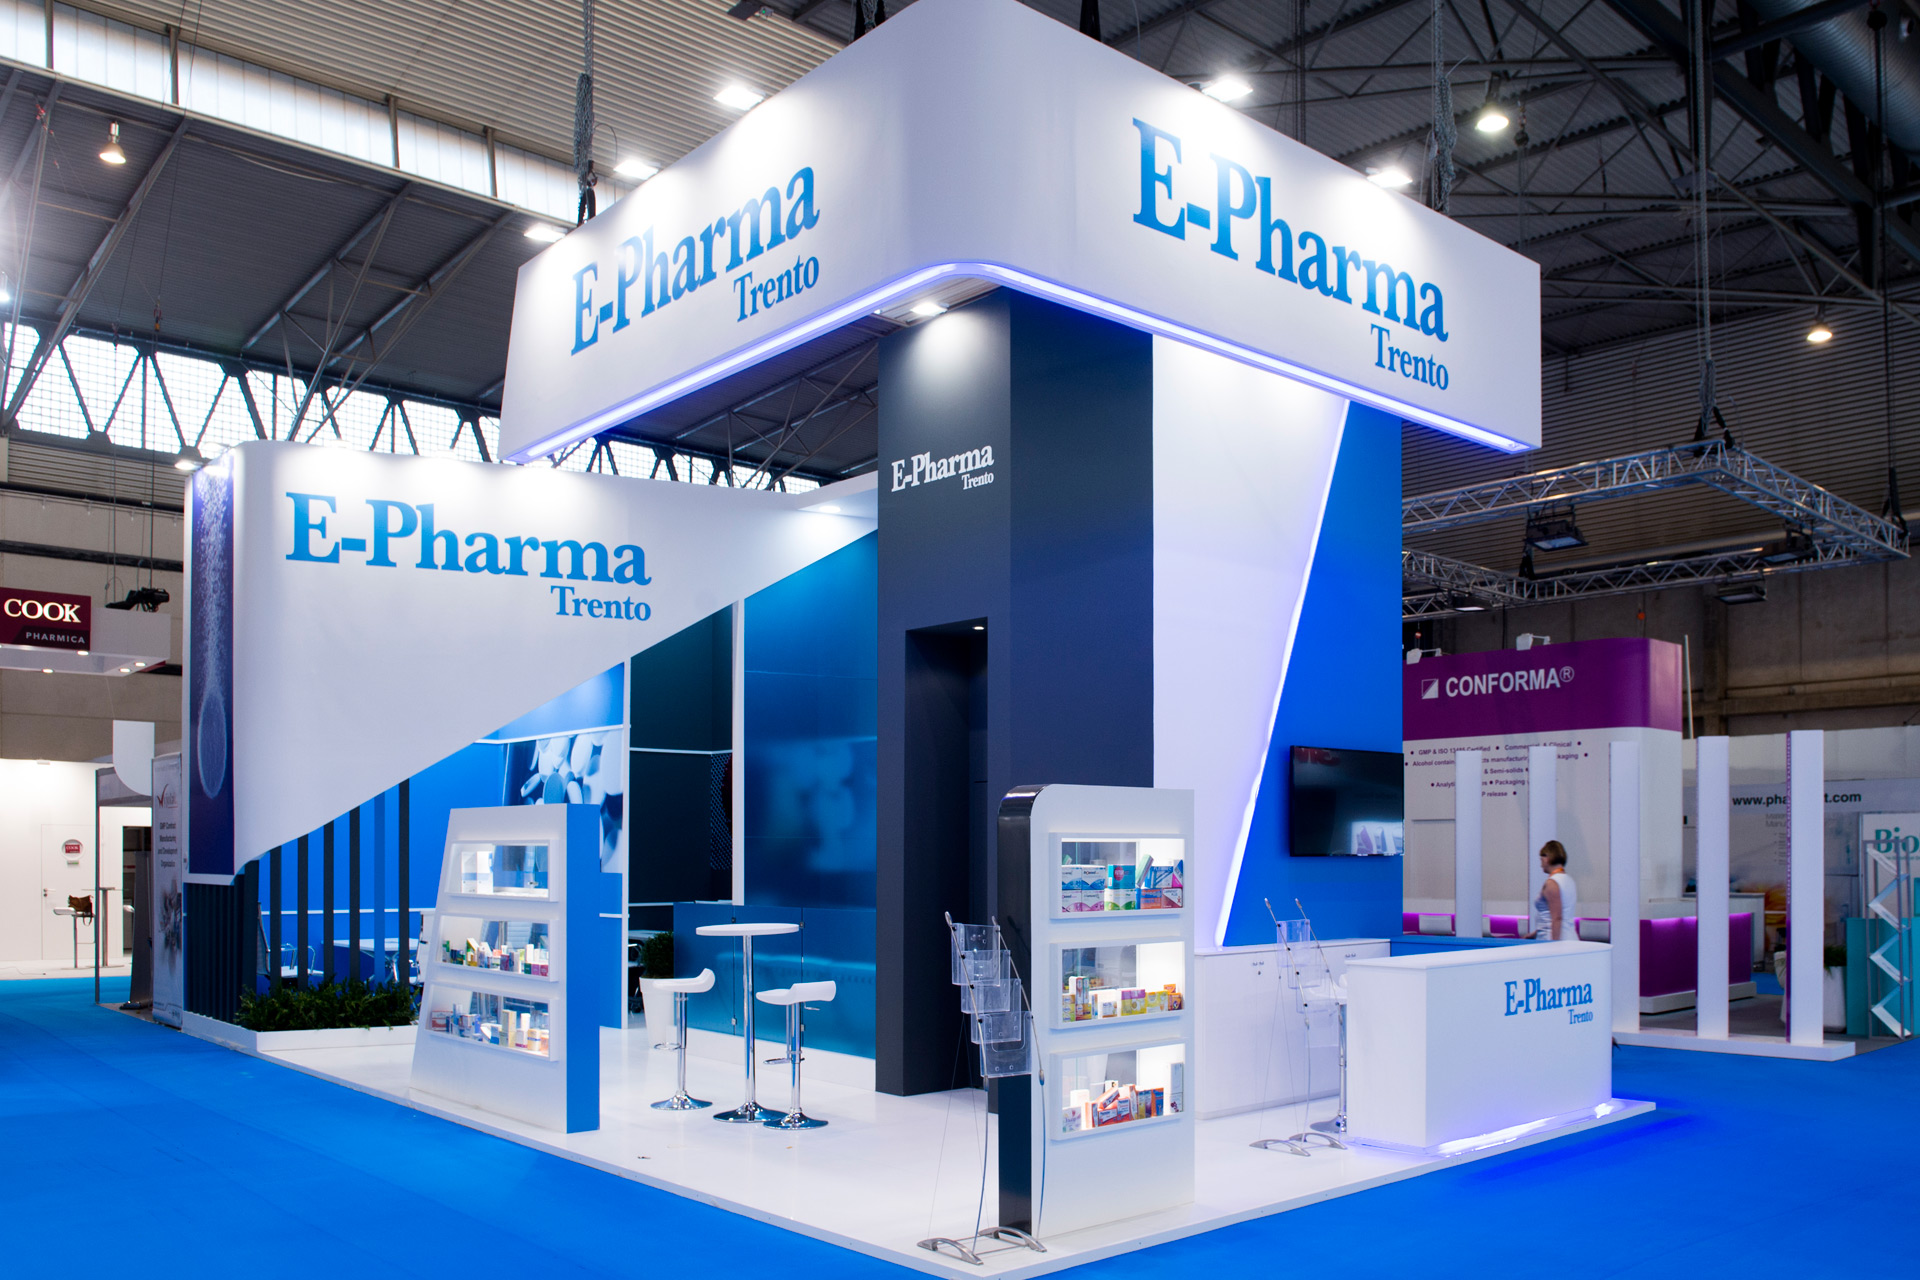 Expo Exhibition Stands Out : Epharma cphi barcelona pro expo exhibition stand